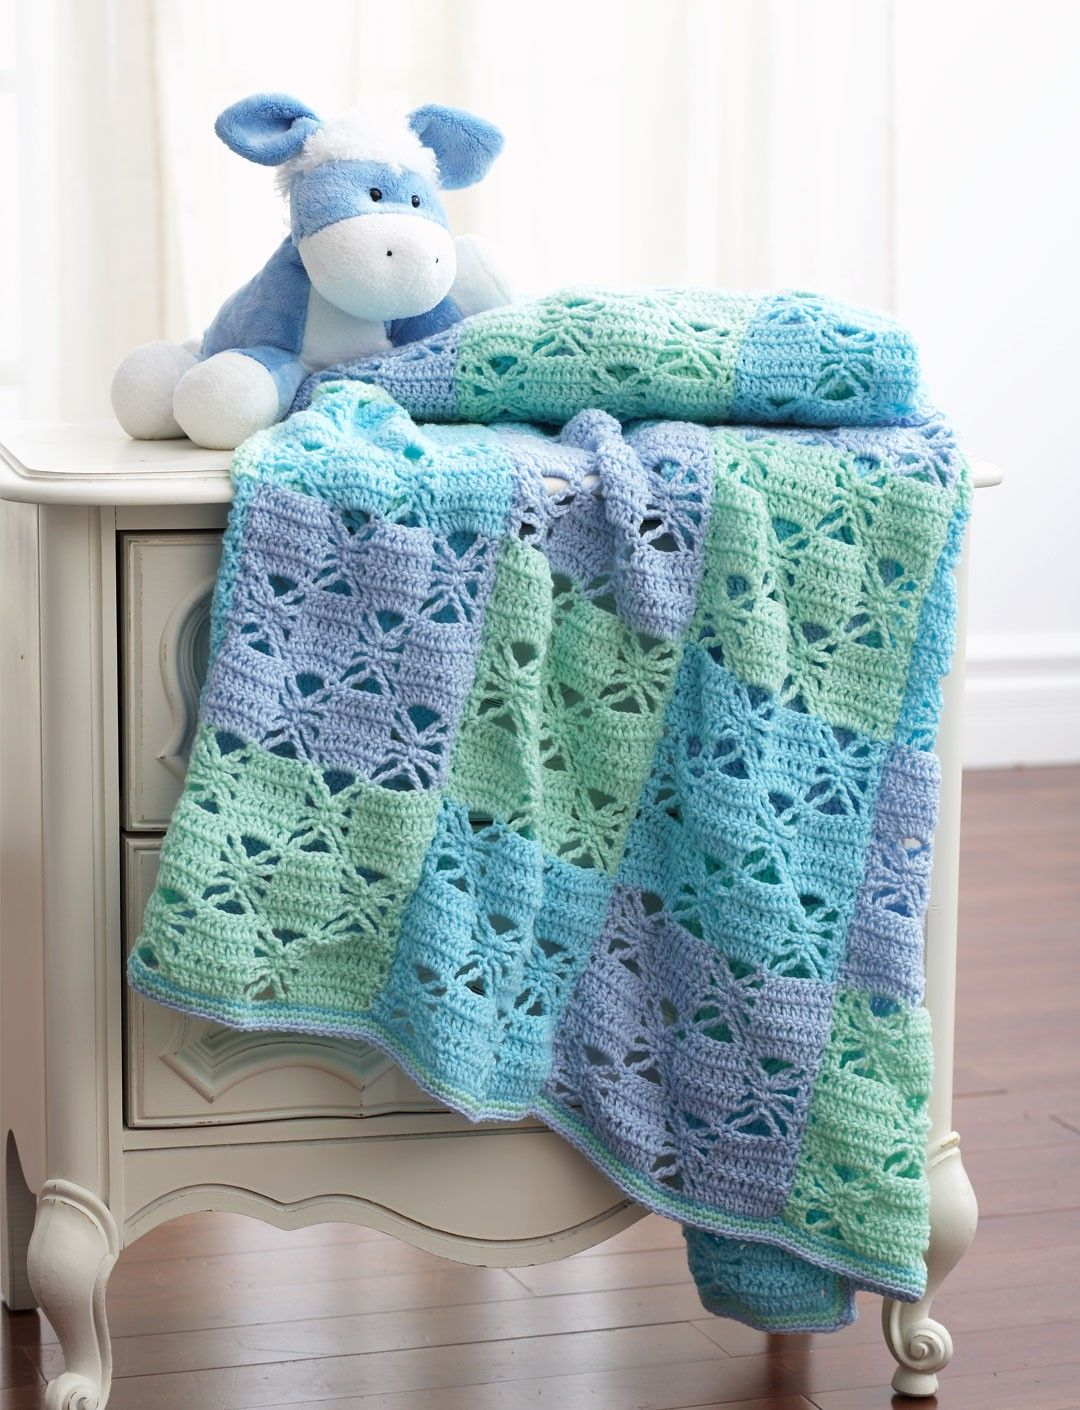 Yarnspirations bernat 3 color crochet blanket patterns yarnspirations bernat 3 color crochet blanket free pattern available in english and french made in strips bankloansurffo Image collections